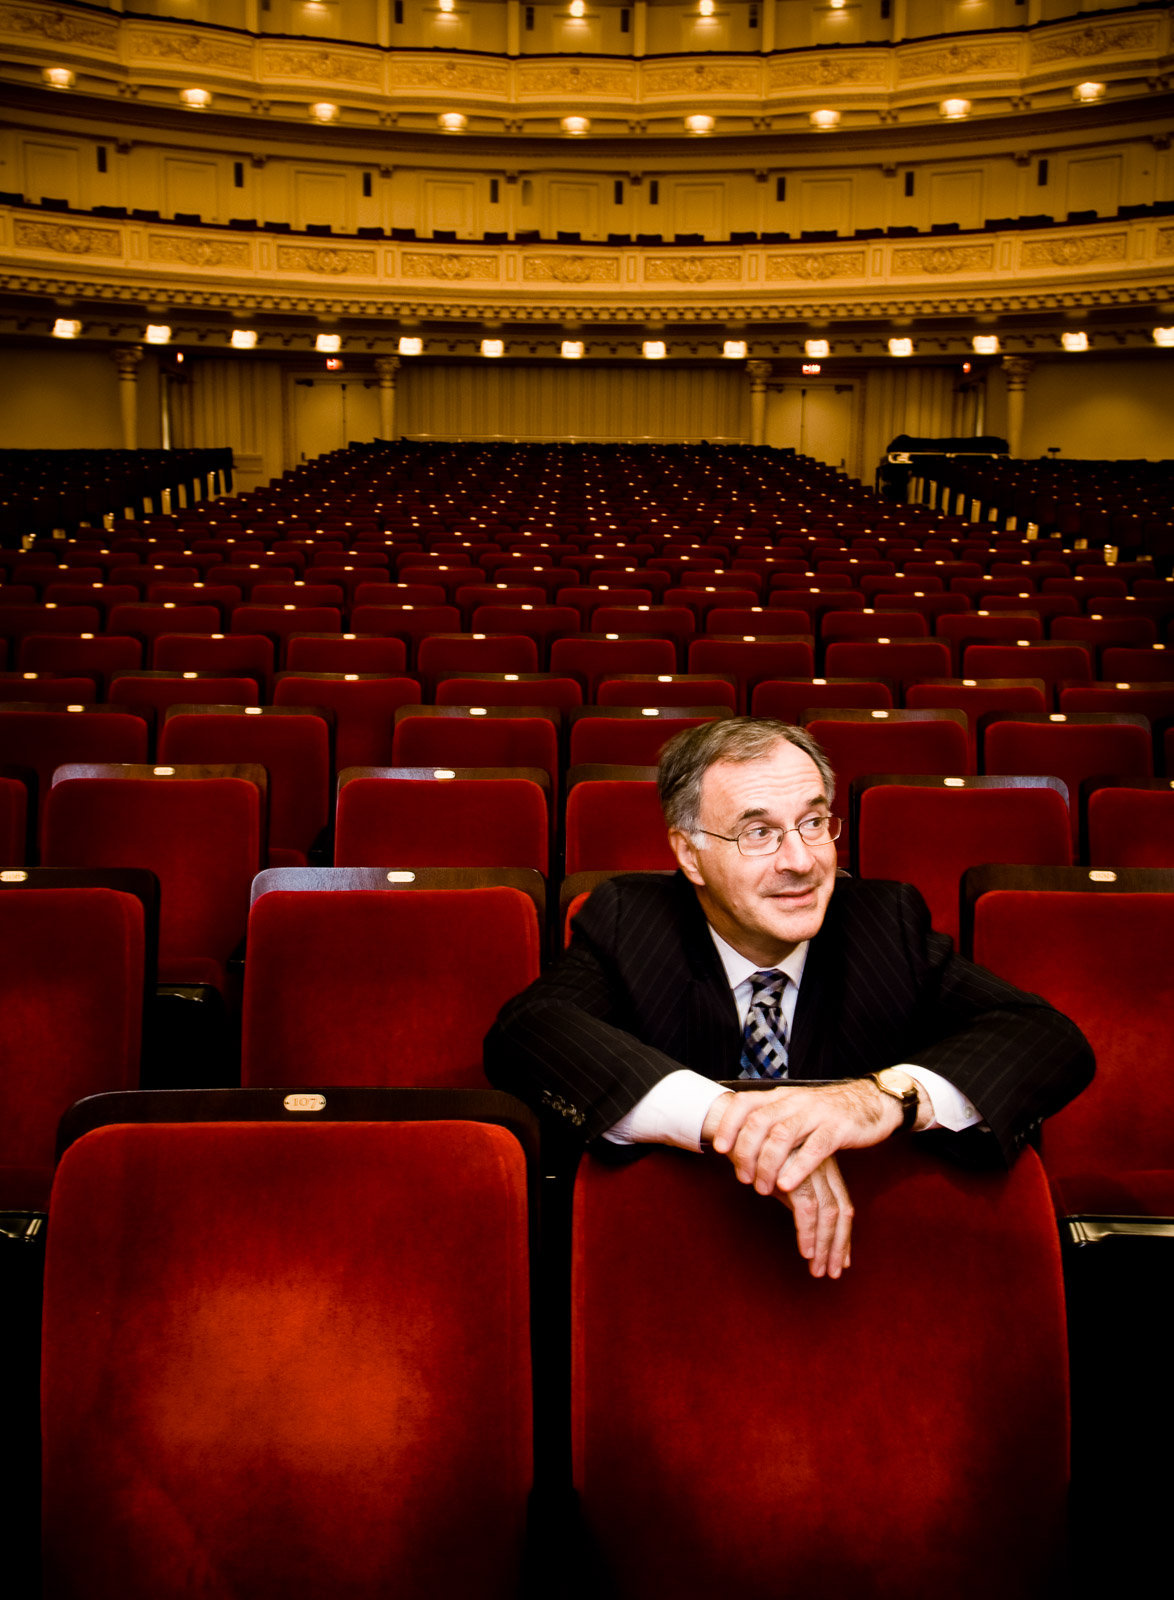 Sir Clive Gillinson / Director of Carnegie Hall